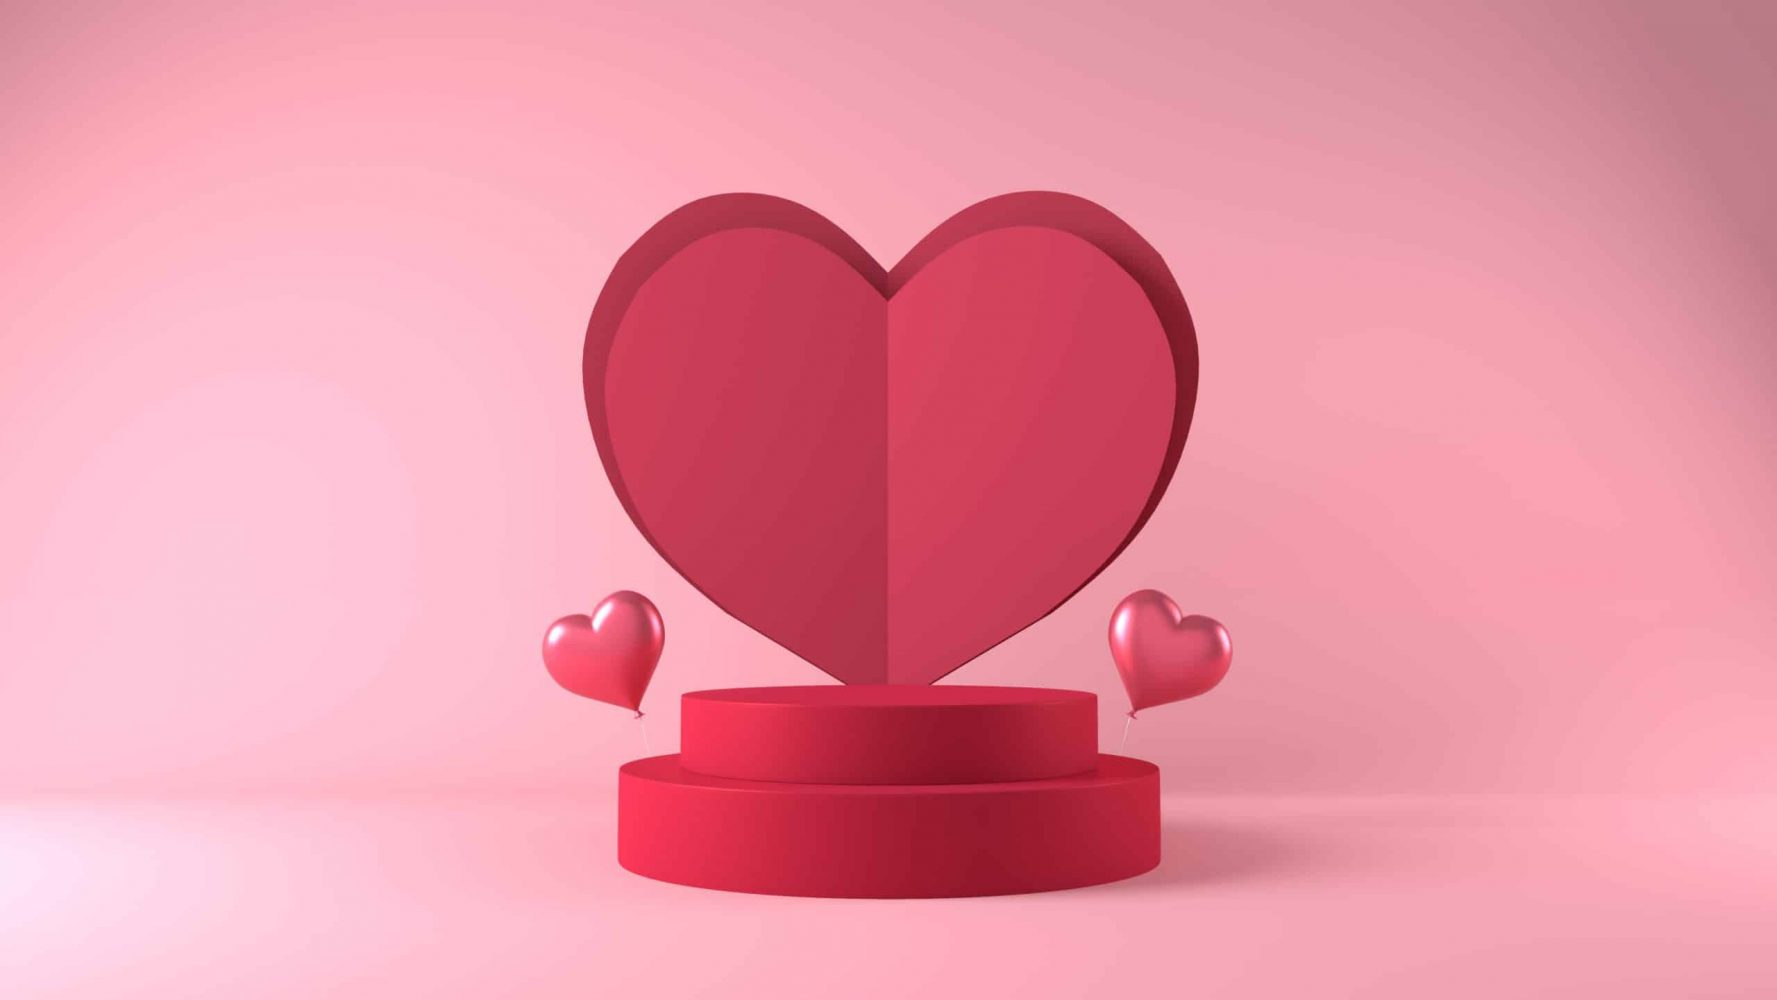 podium-product-placement-valentines-day-with-decorations (1)